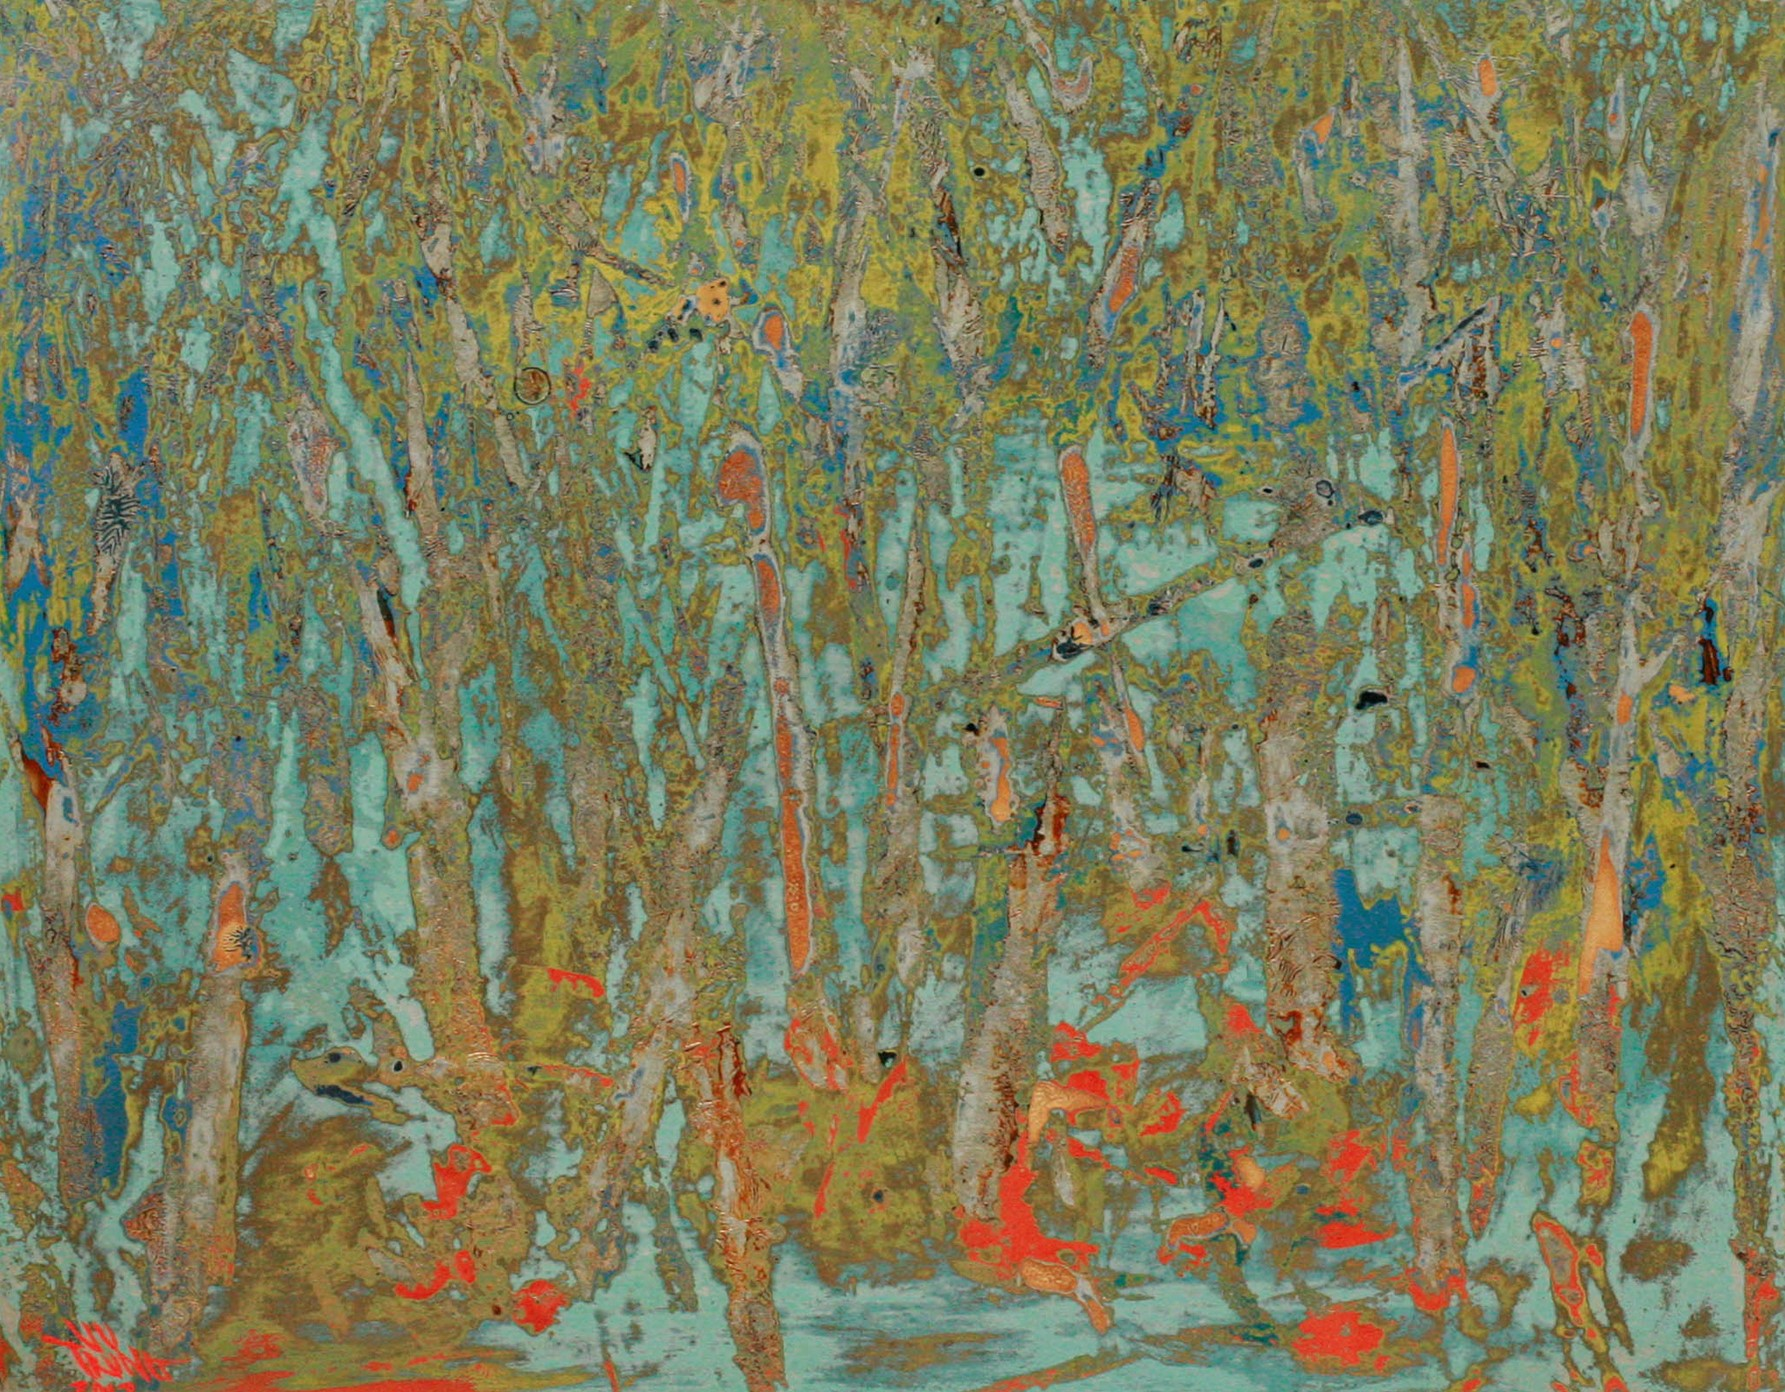 Hot Summer Forest by Vu Duc Trung, lacquer on wood, 2012, 40 x 50 cm